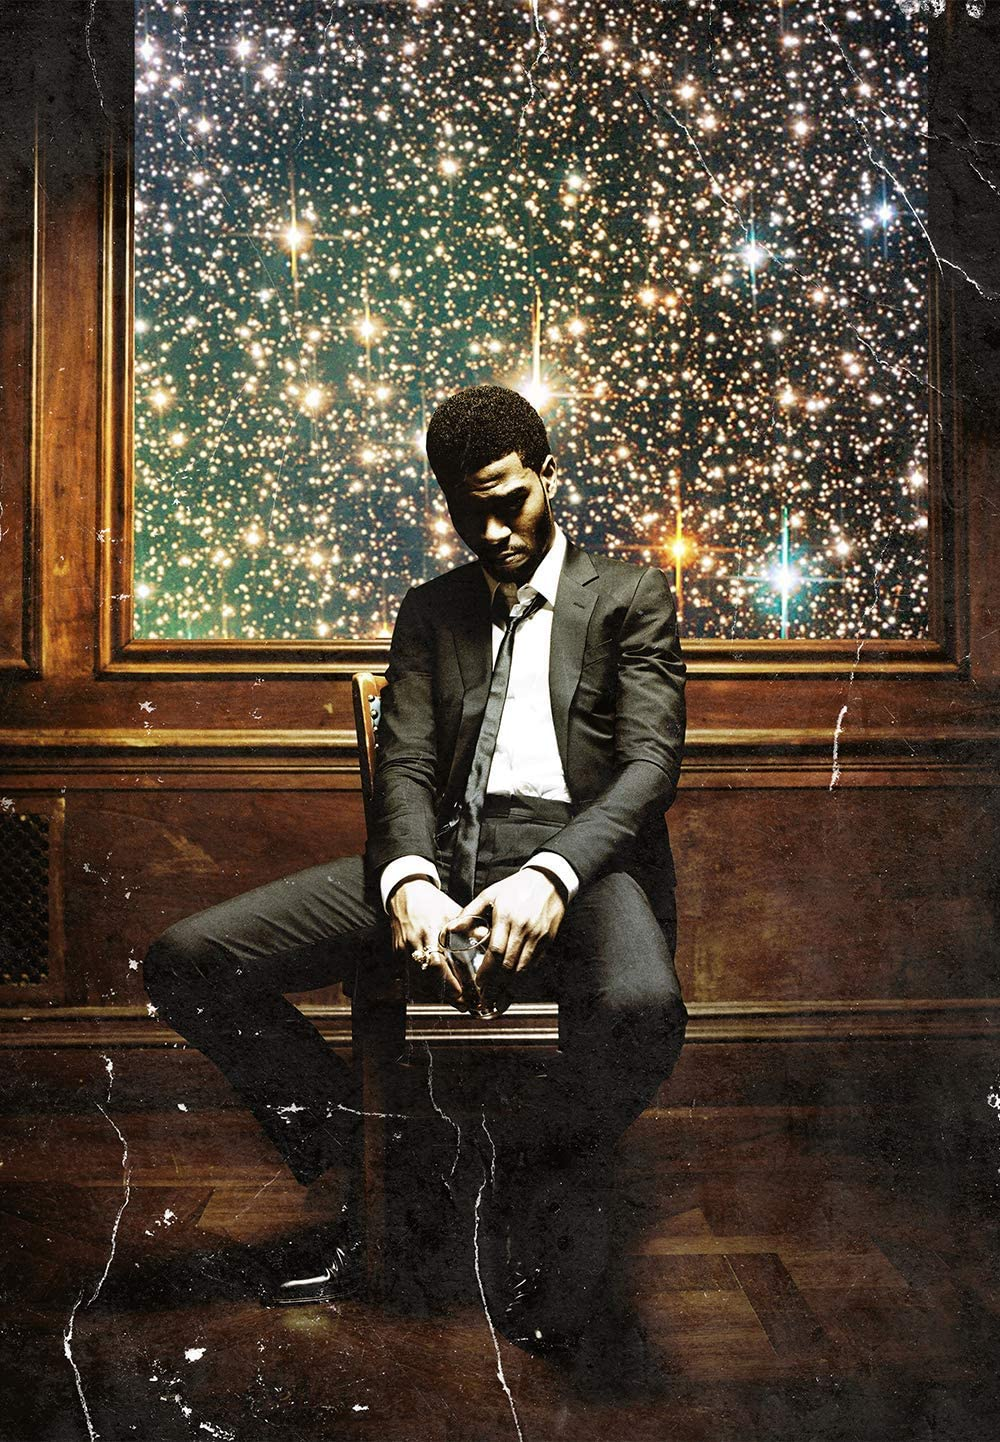 Kid Cudi Man On The Moon II The Legend of Mr. Rager Music Poster 11 x 17 inch Poster Print Frameless Art Gift 28 x 43 cm Matte Paper Surface